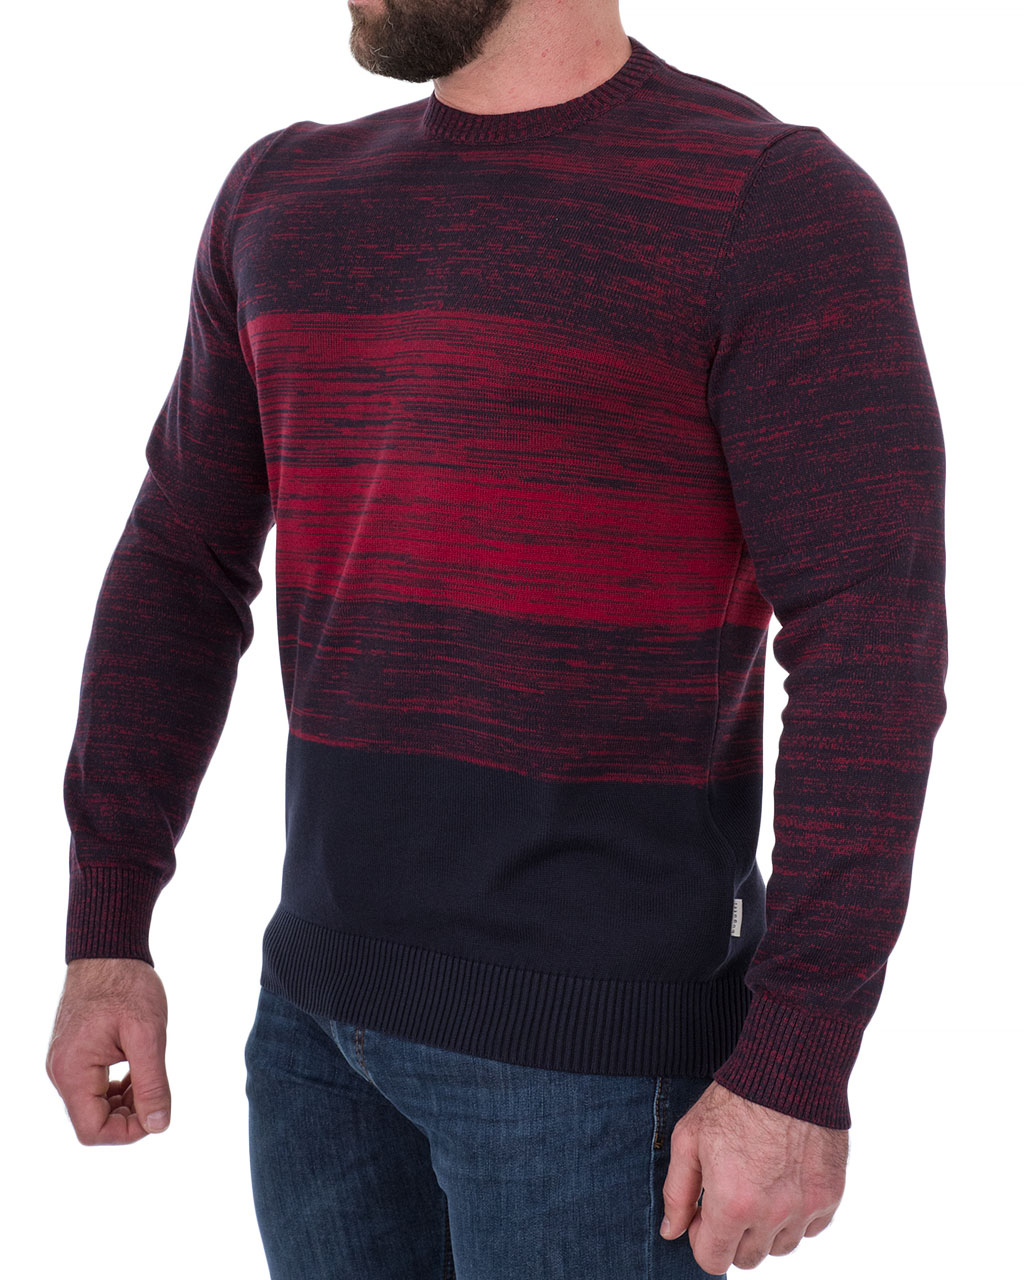 Men's jumper 7450-45522-960/19-20--2 (4)